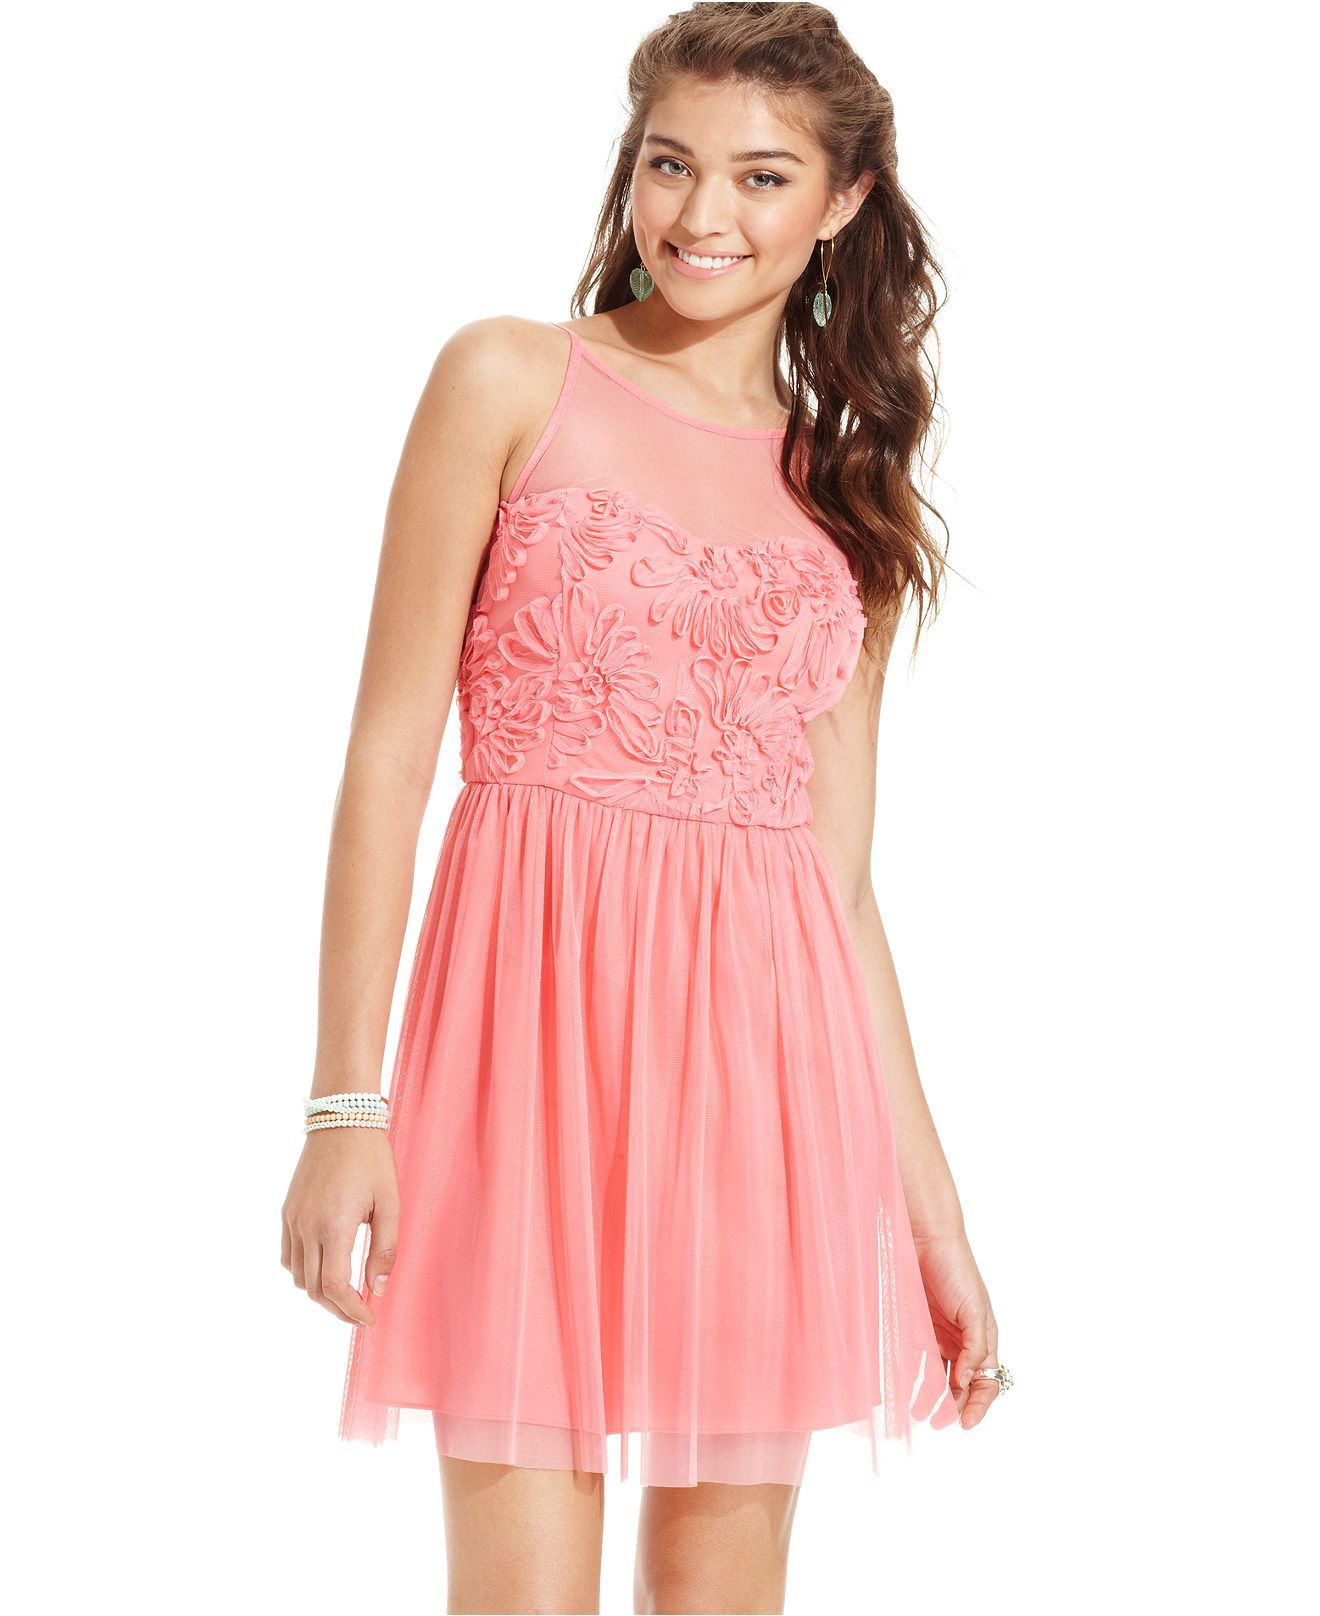 Jump Juniors Dress, Sleeveless Illusion A-Line - Juniors Dresses ...